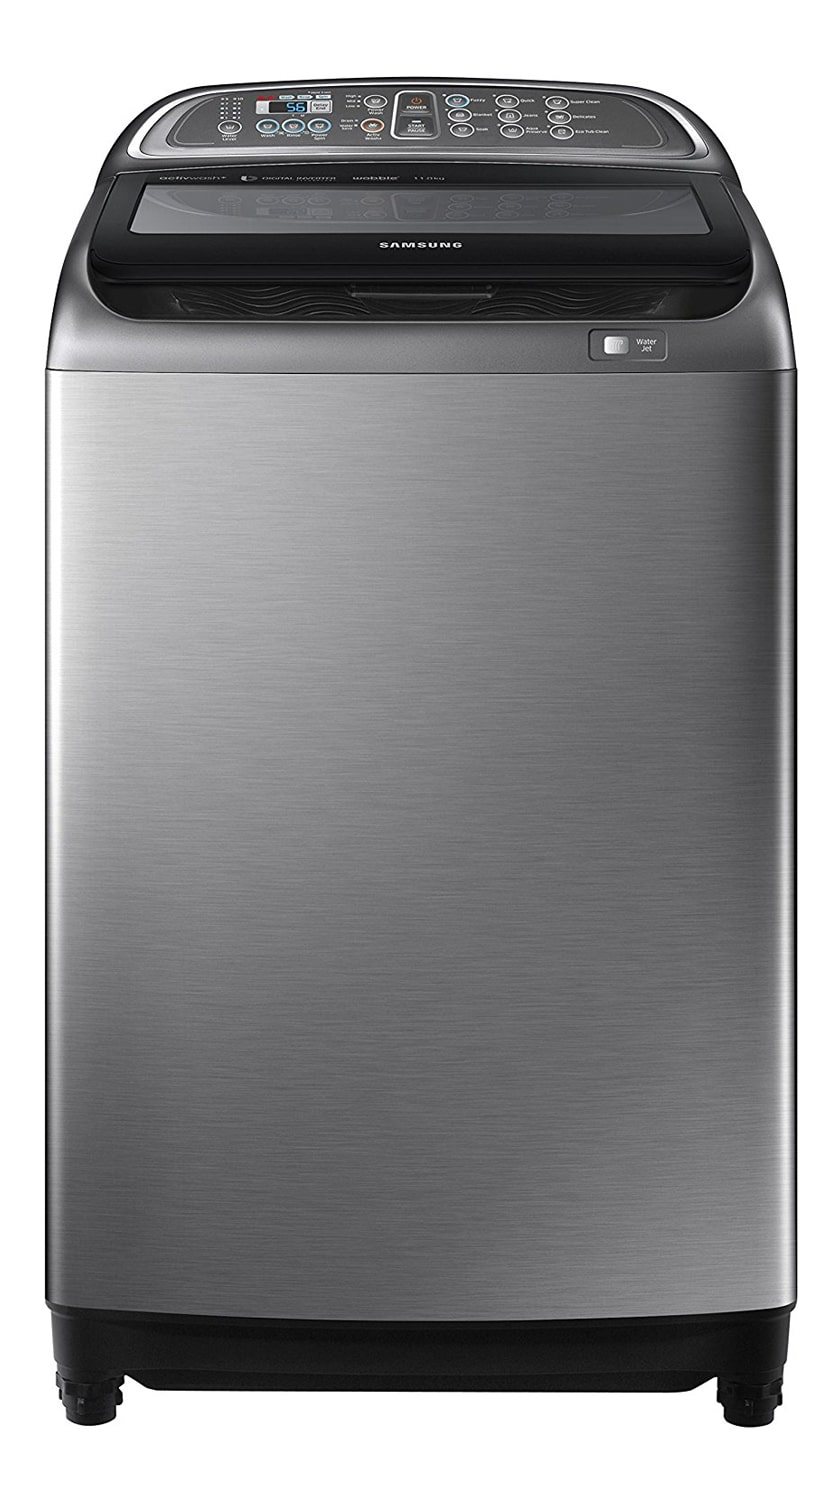 SAMSUNG WA11J5750SP 11KG Fully Automatic Top Load Washing Machine